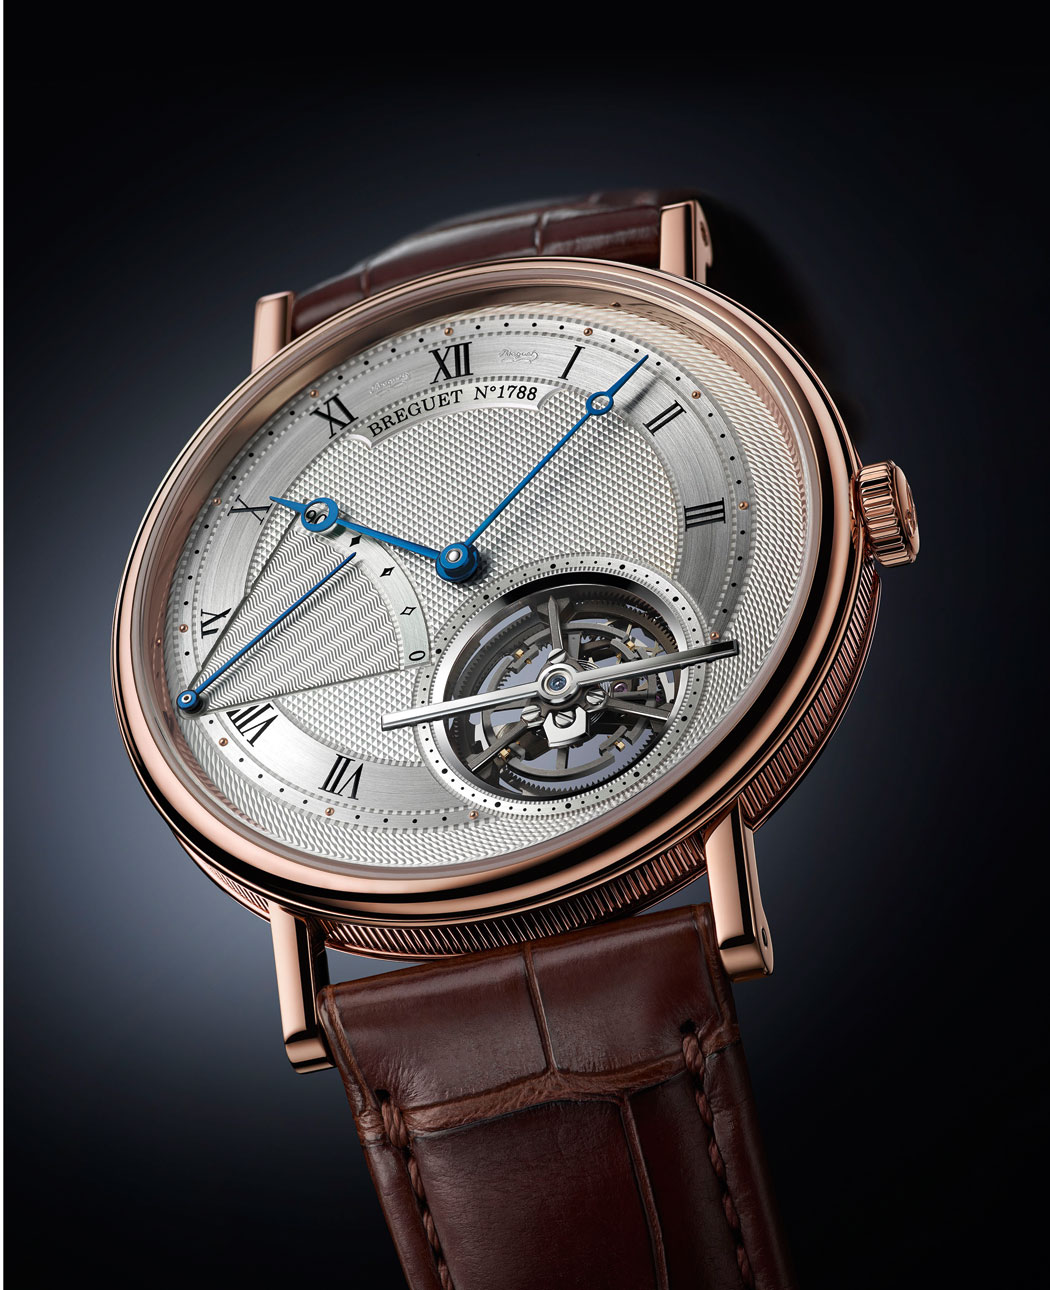 EXTRA-THIN SELF-WINDING CLASSIQUE TOURBILLON de Breguet